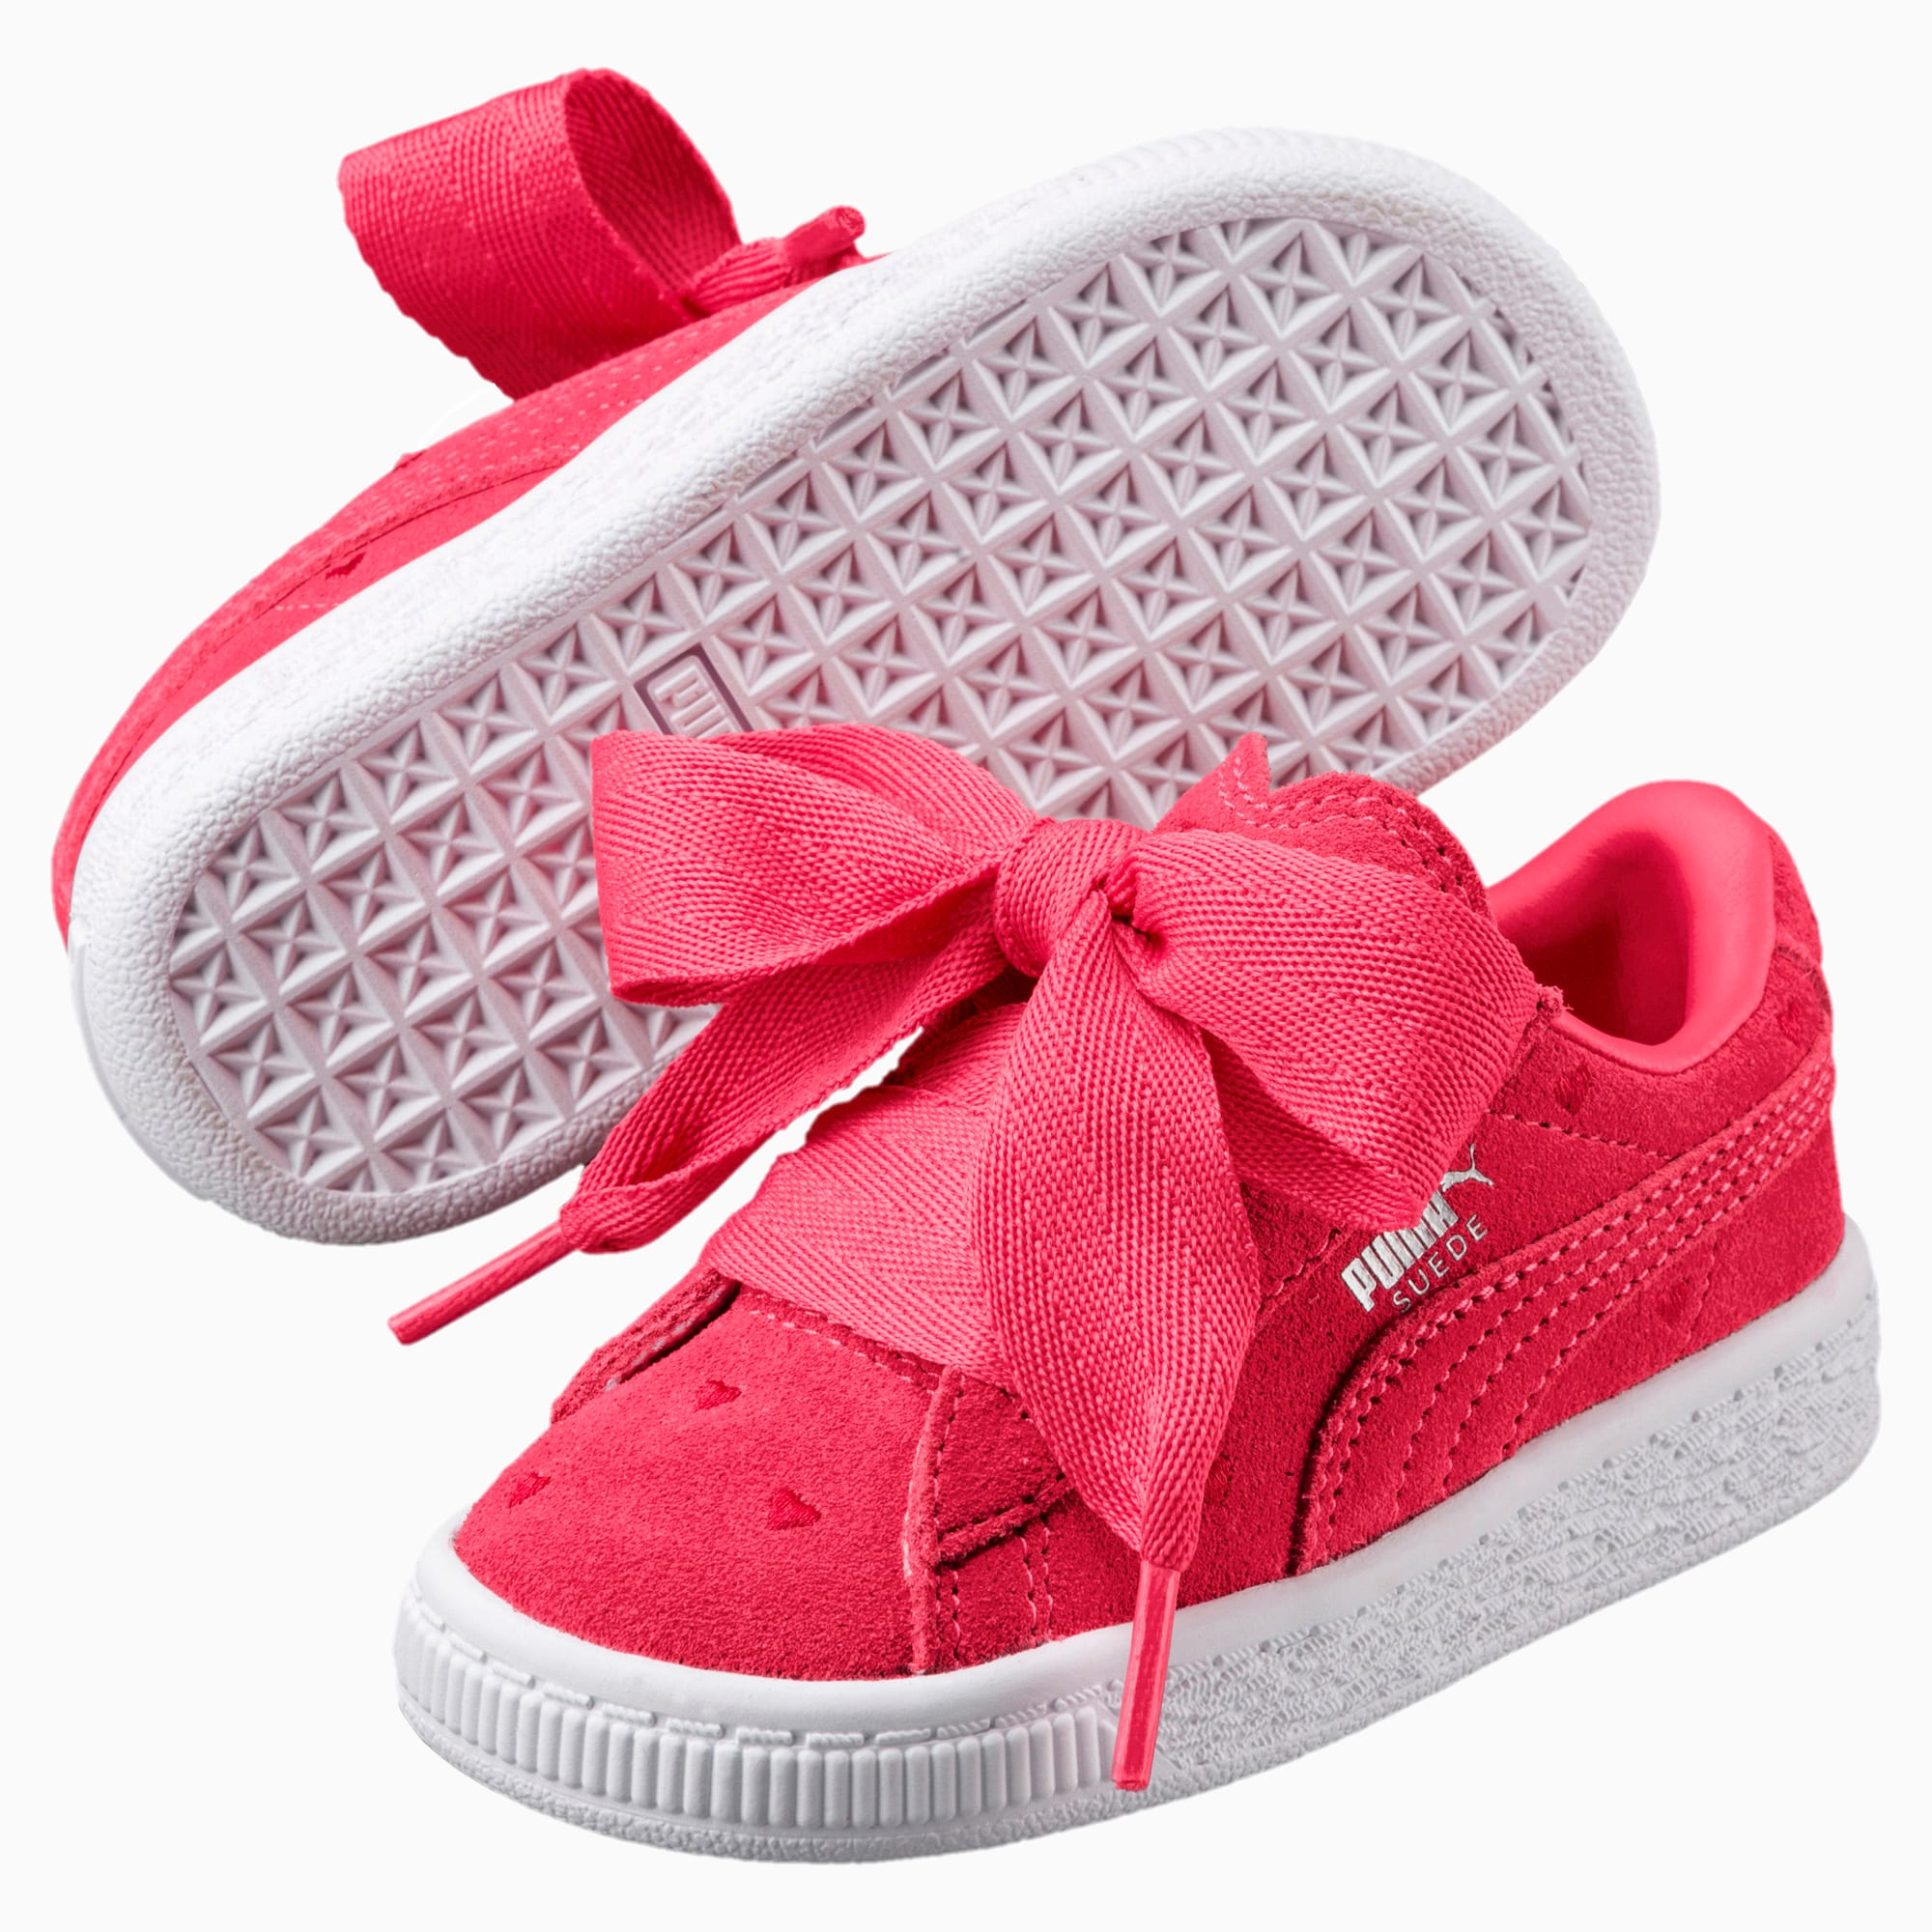 Buty Puma SUEDE HEART VALENTINE PARADISE PINKPARADISE PINK